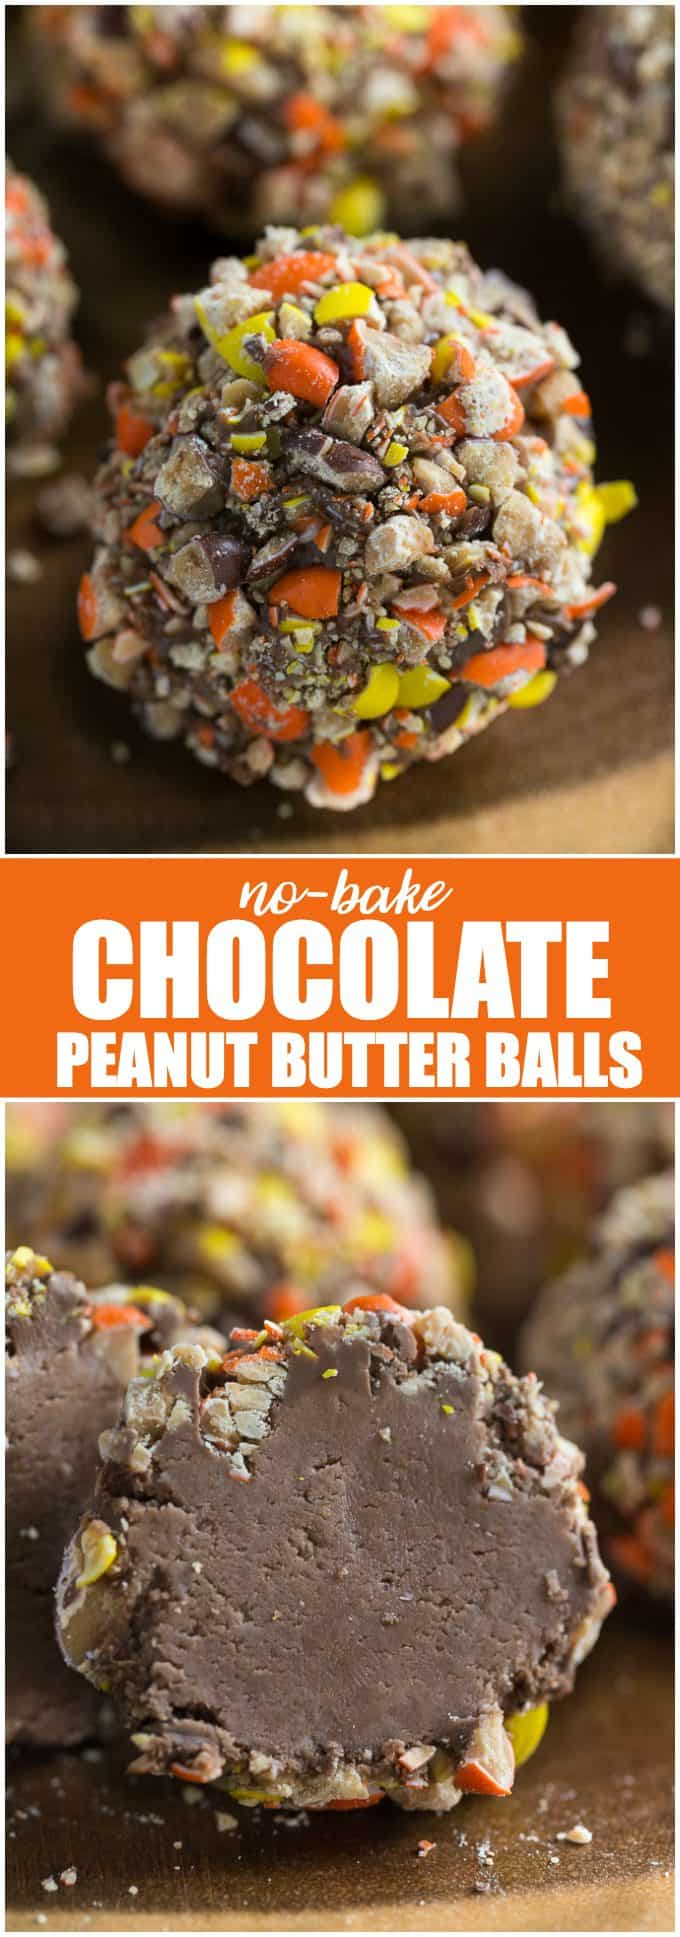 No-Bake Chocolate Peanut Butter Balls - Super easy DIY snack gift! No baking required for these delicious desserts.